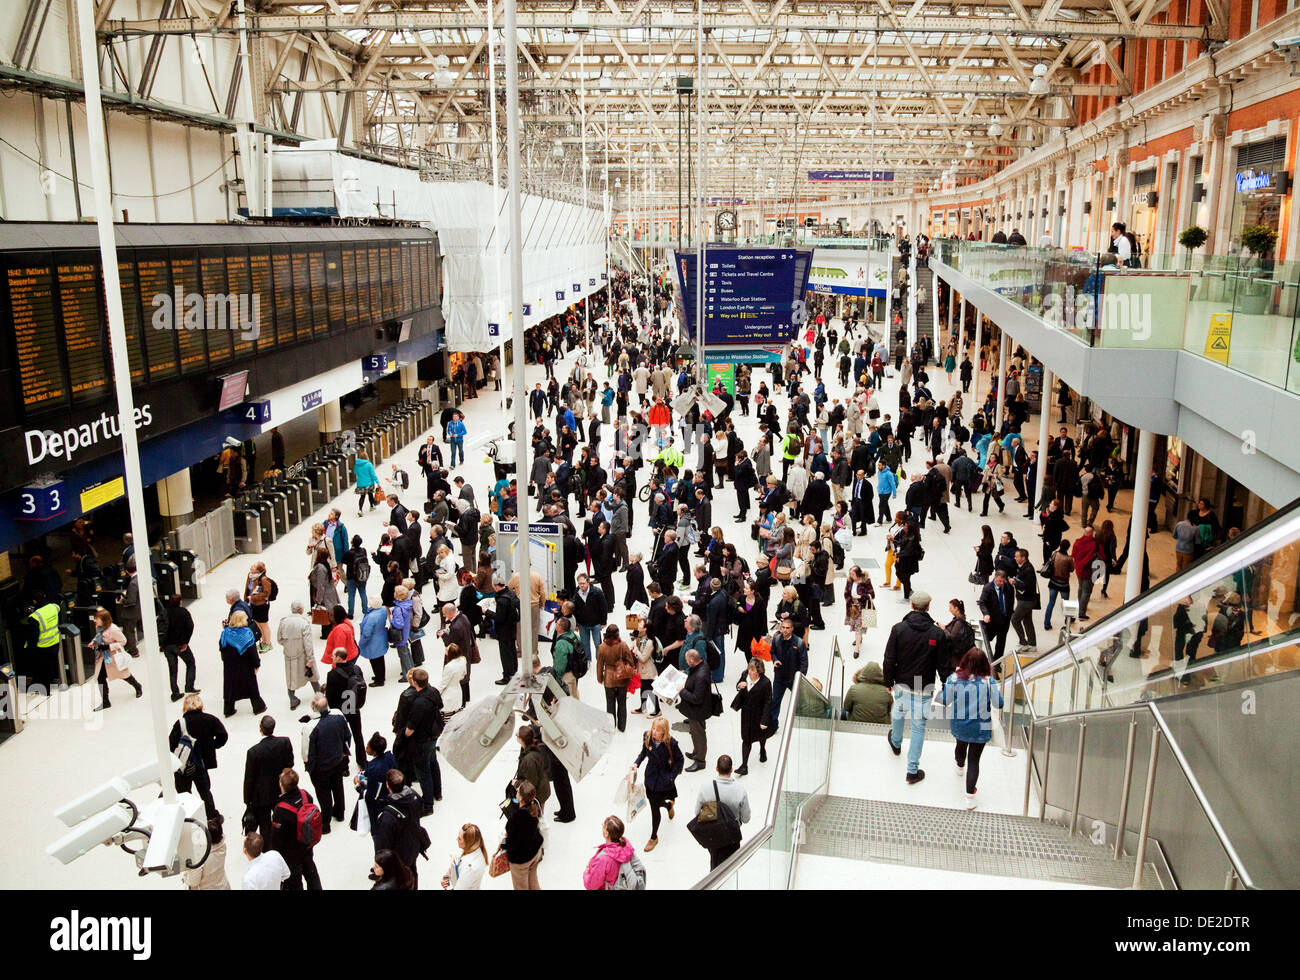 Waterloo station concourse at evening rush hour, London England UK - Stock Image